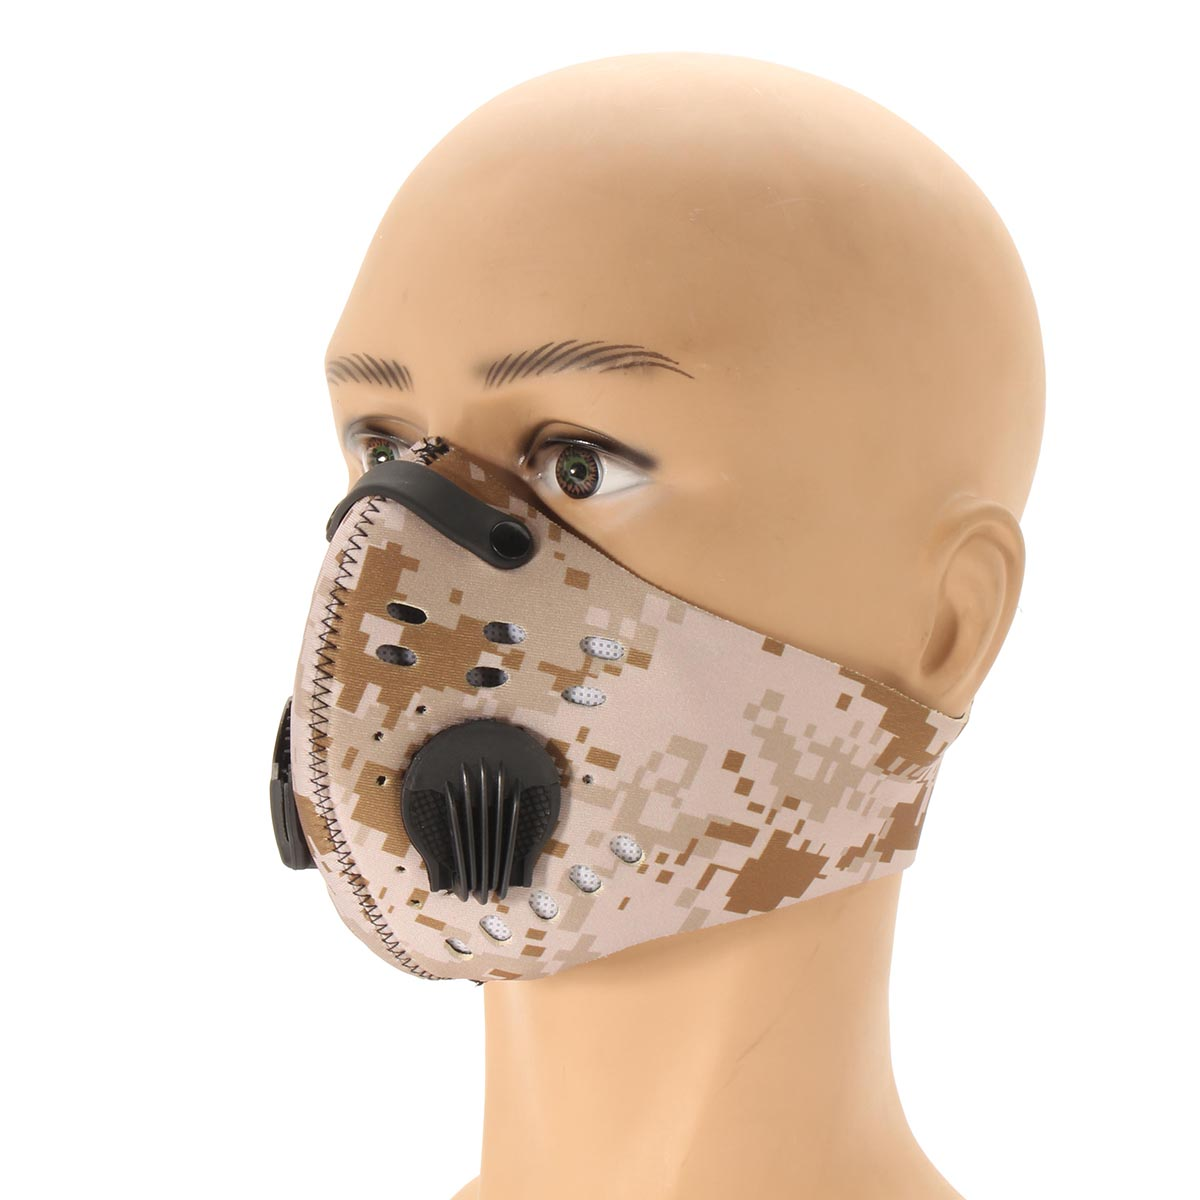 NEW Dustproof Mask Protection Breathable Cycling Activated Carbon Filter Dust Mask Workplace Safety 2017 new arrival hot selling respiration valve industrial gas masks activated carbon filter safety mask labor protection